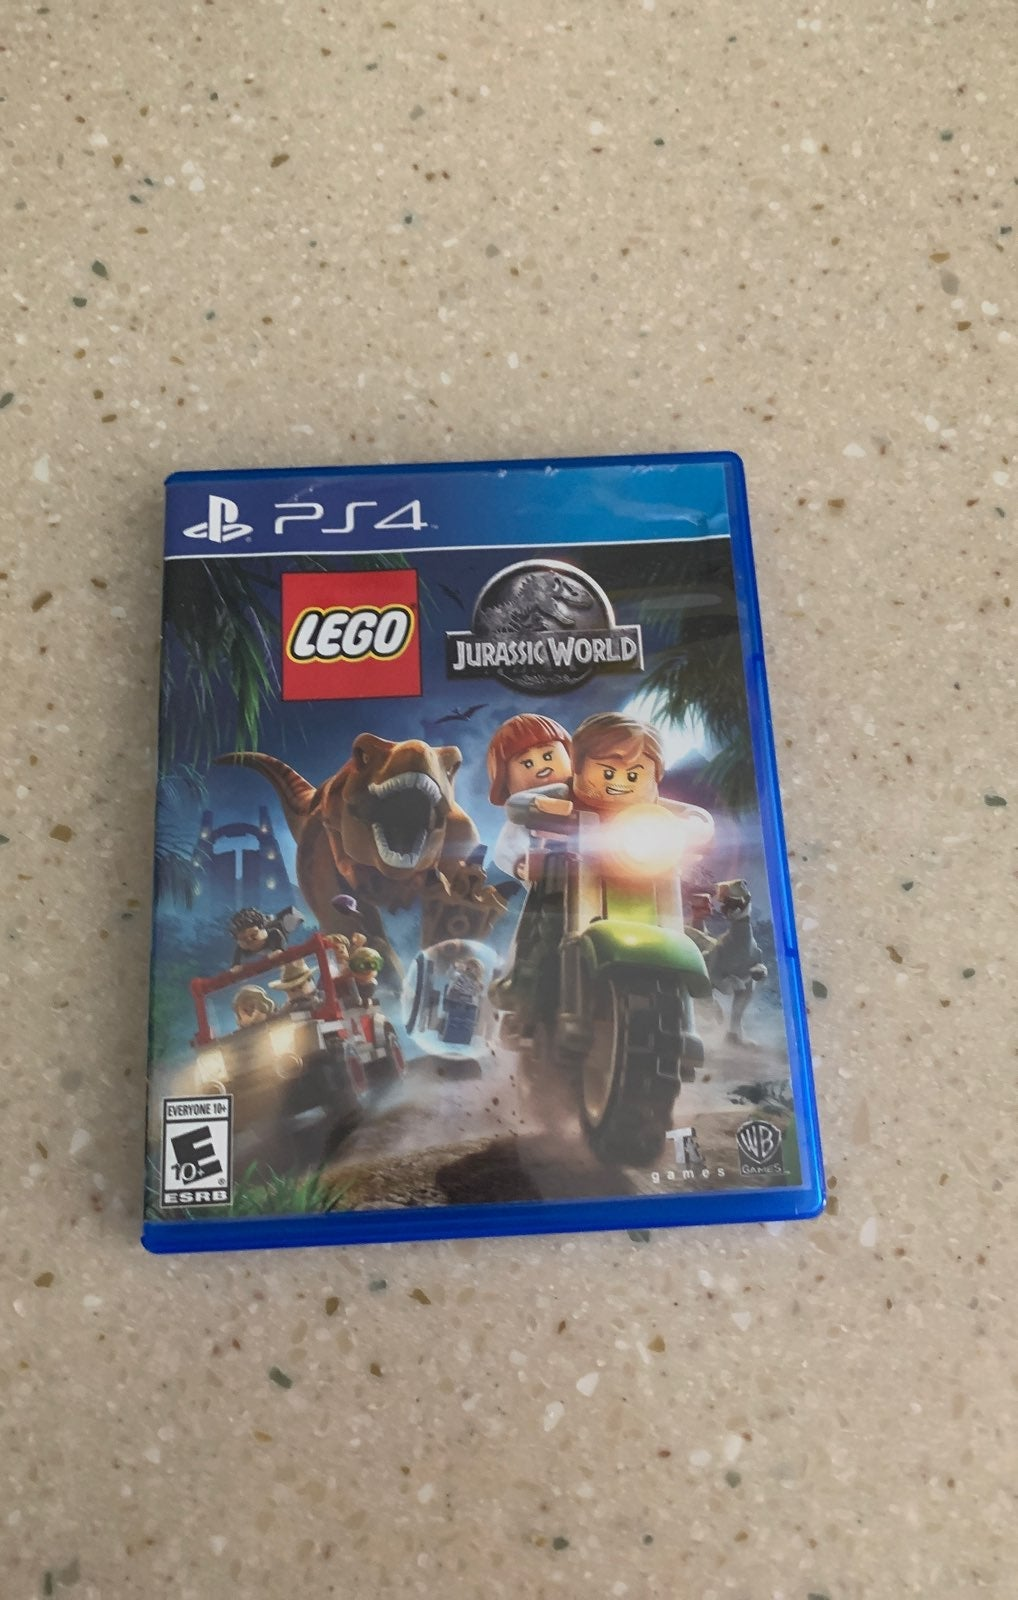 PS4 jurassic wold lego